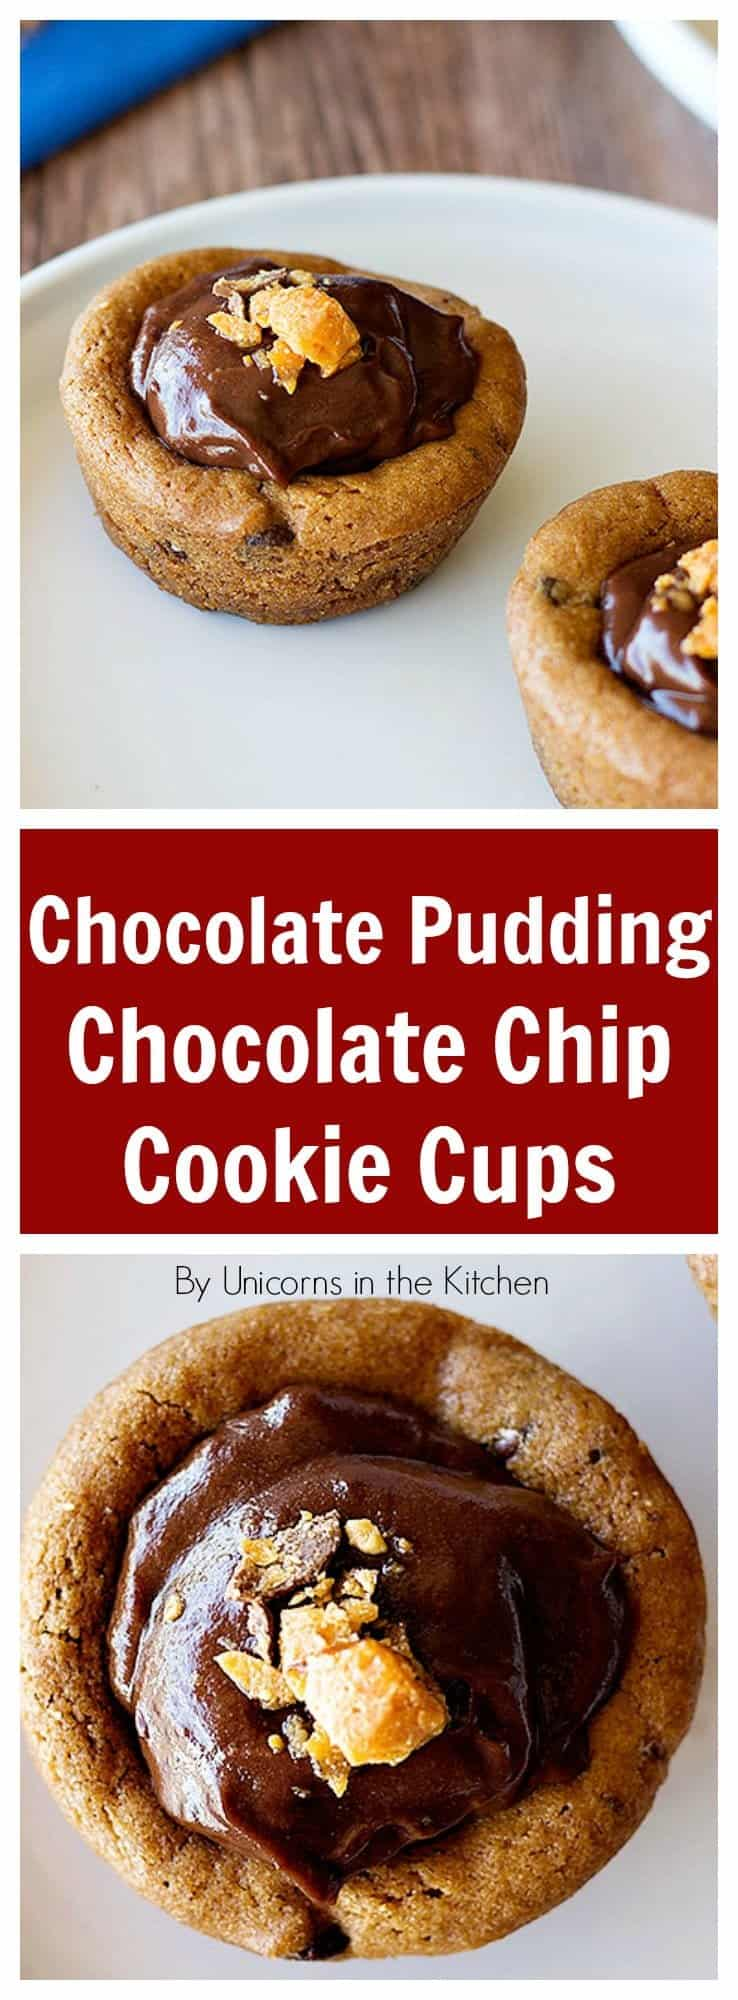 Make yourself and everyone else happy by making these Chocolate Pudding Chocolate Chip Cookie Cups! They are fun and SO delicious!